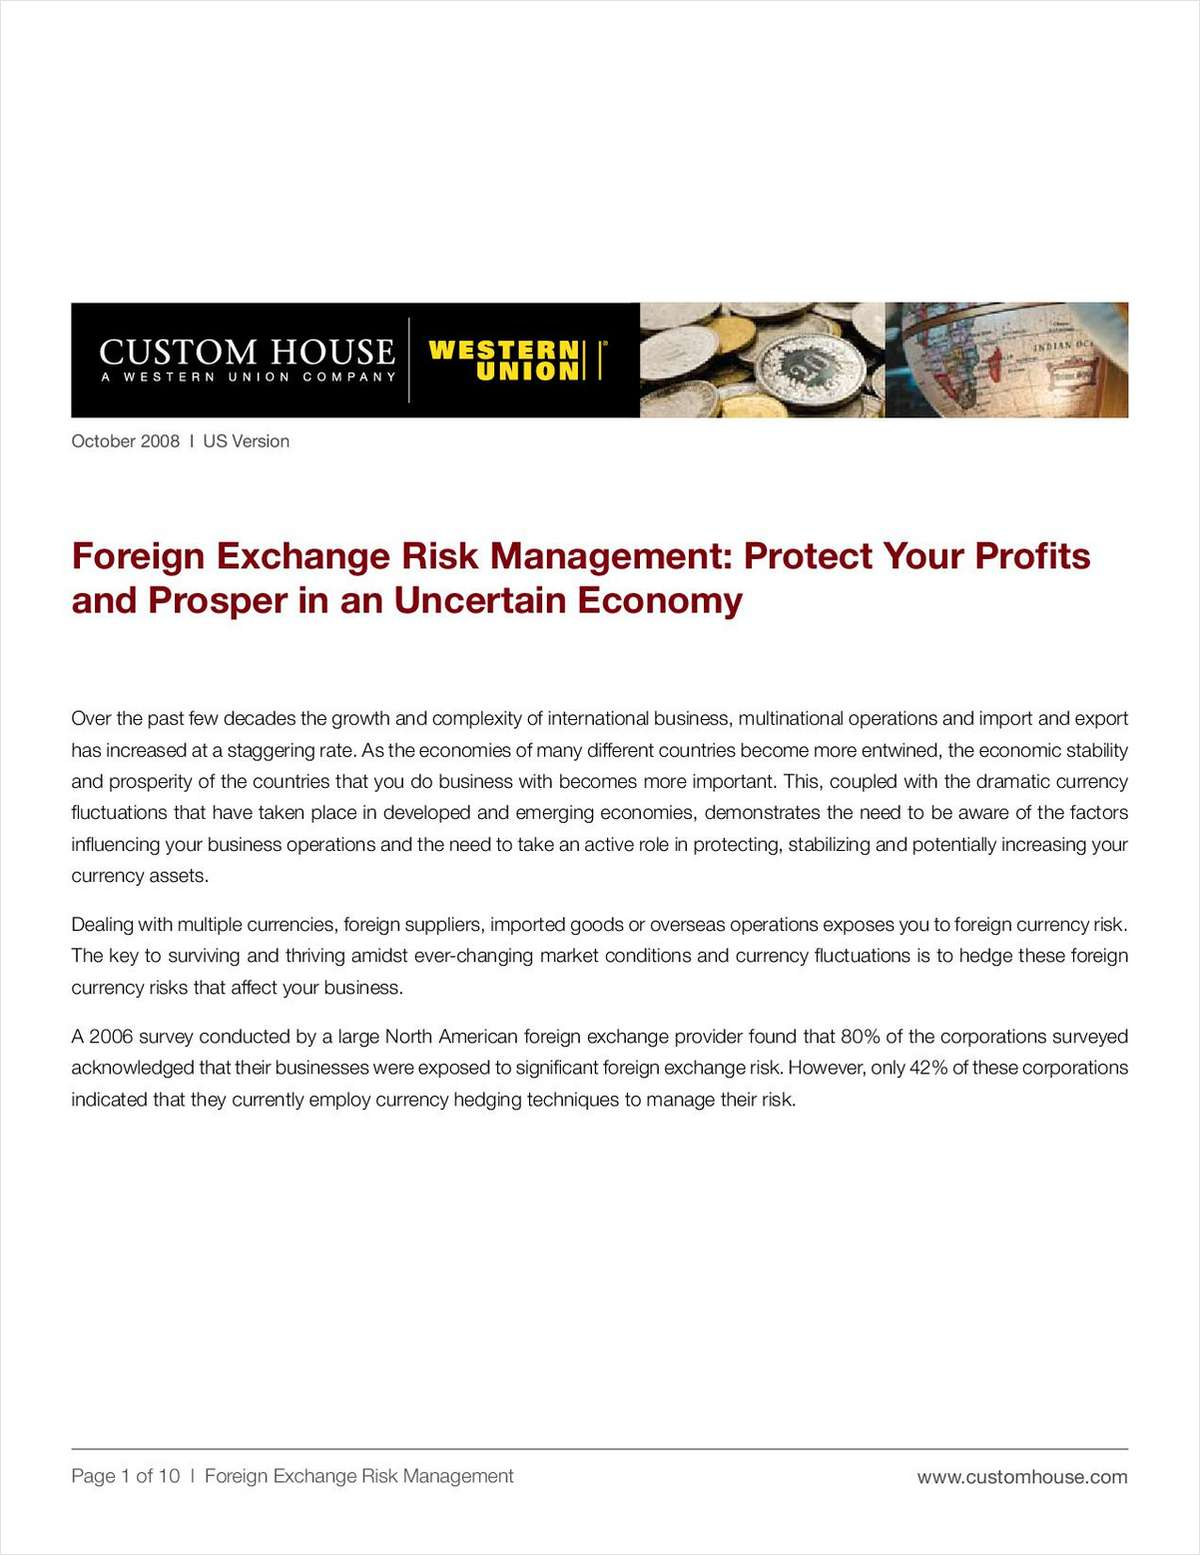 Hedge Your Currency Risks – Foreign Exchange Risk Management